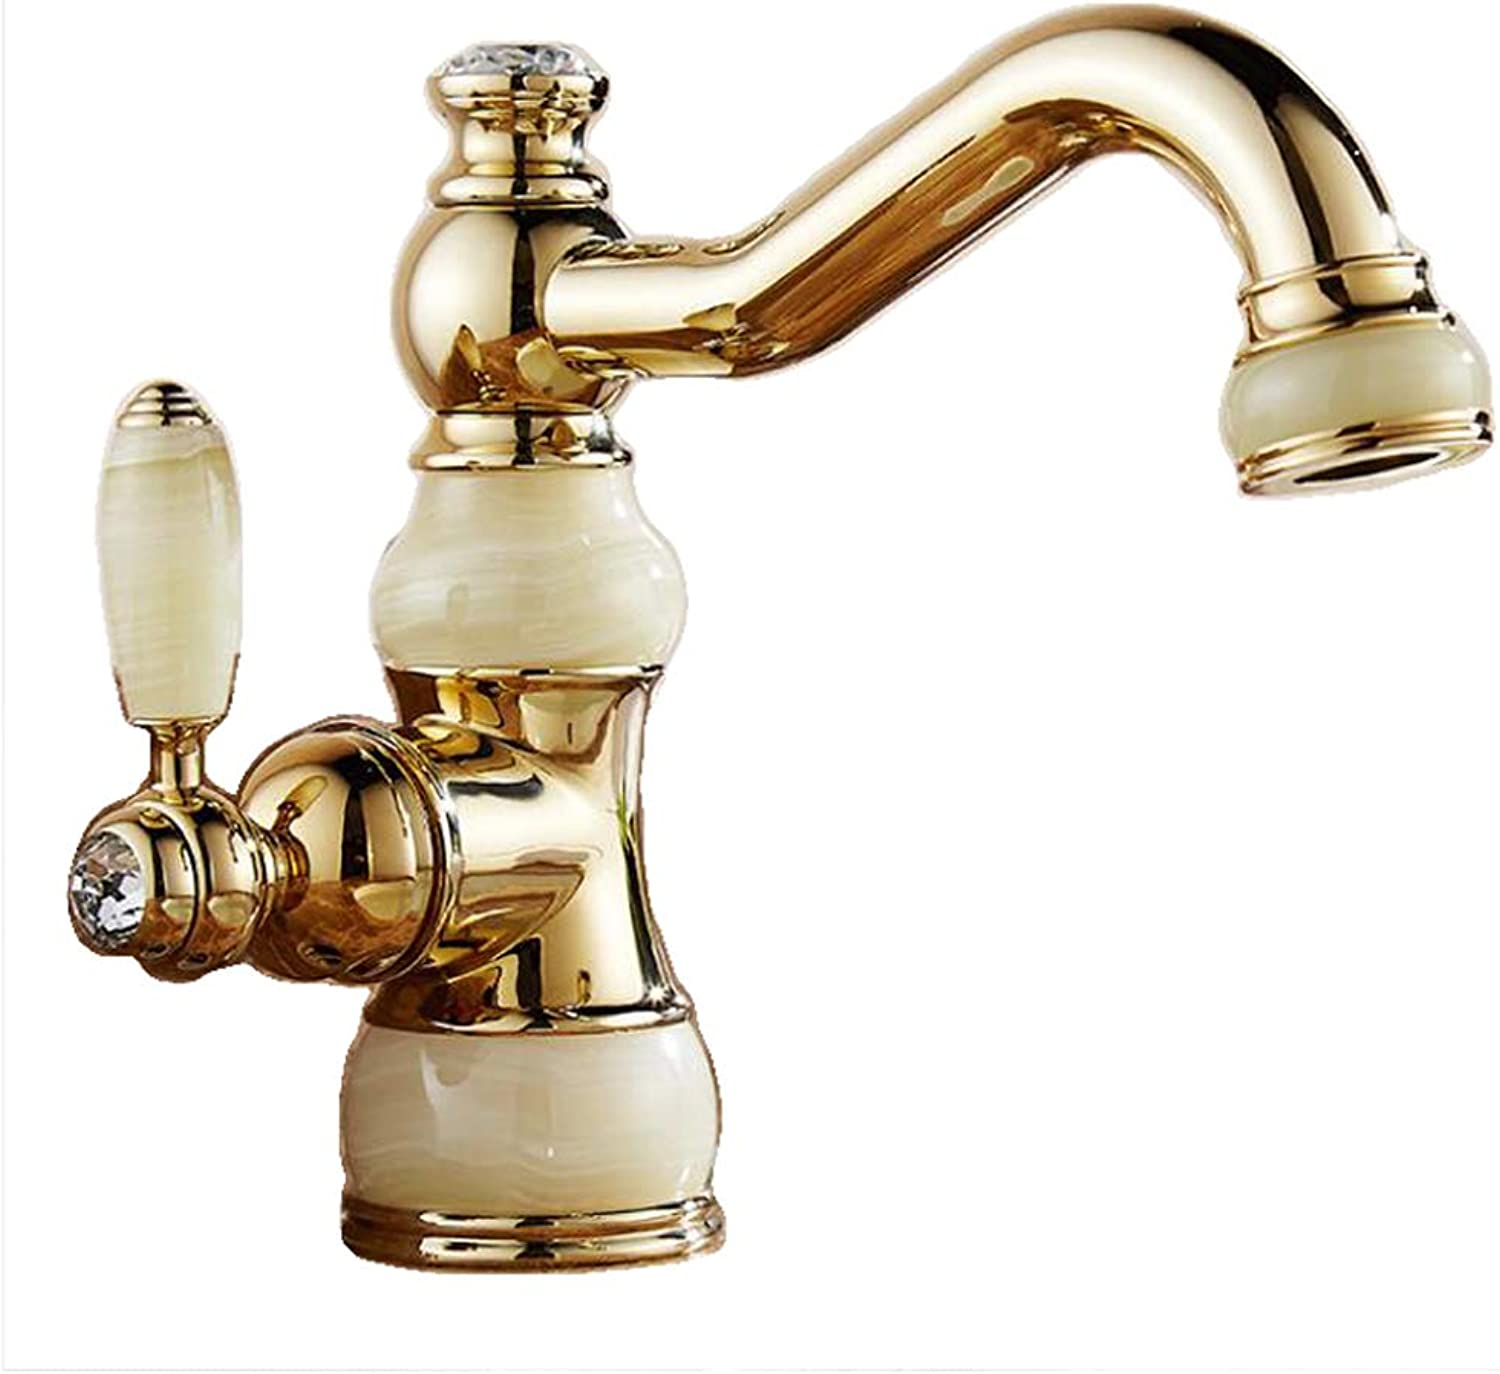 Xinxin Full Copper Jade Faucet Turned Out Of The Water Basin Art Basin Hot And Cold Water Faucet